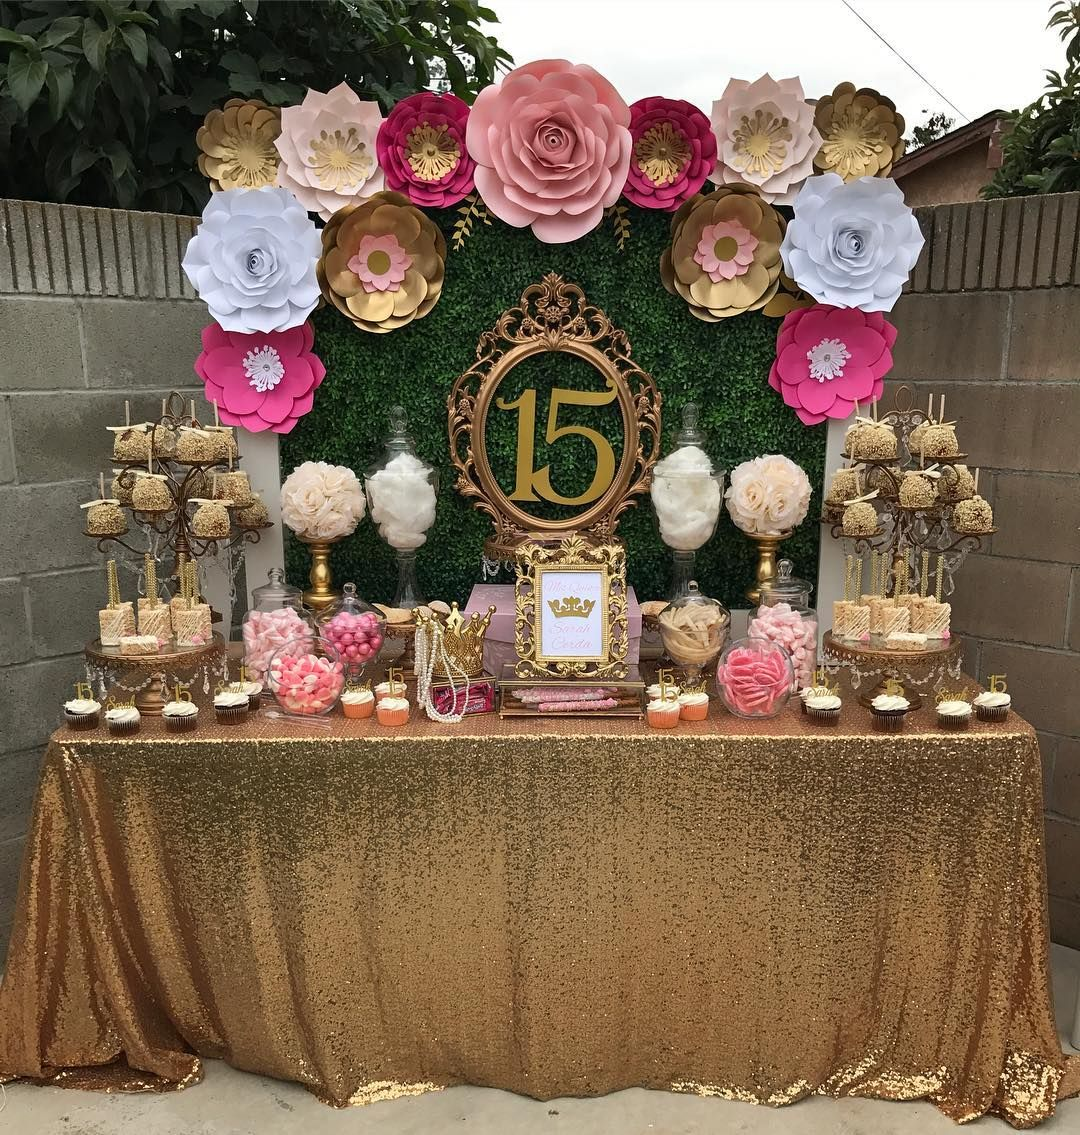 Diy Backdrop Stand For Dessert Table Adorable Pink And Gold Dessert Table By Petals N More